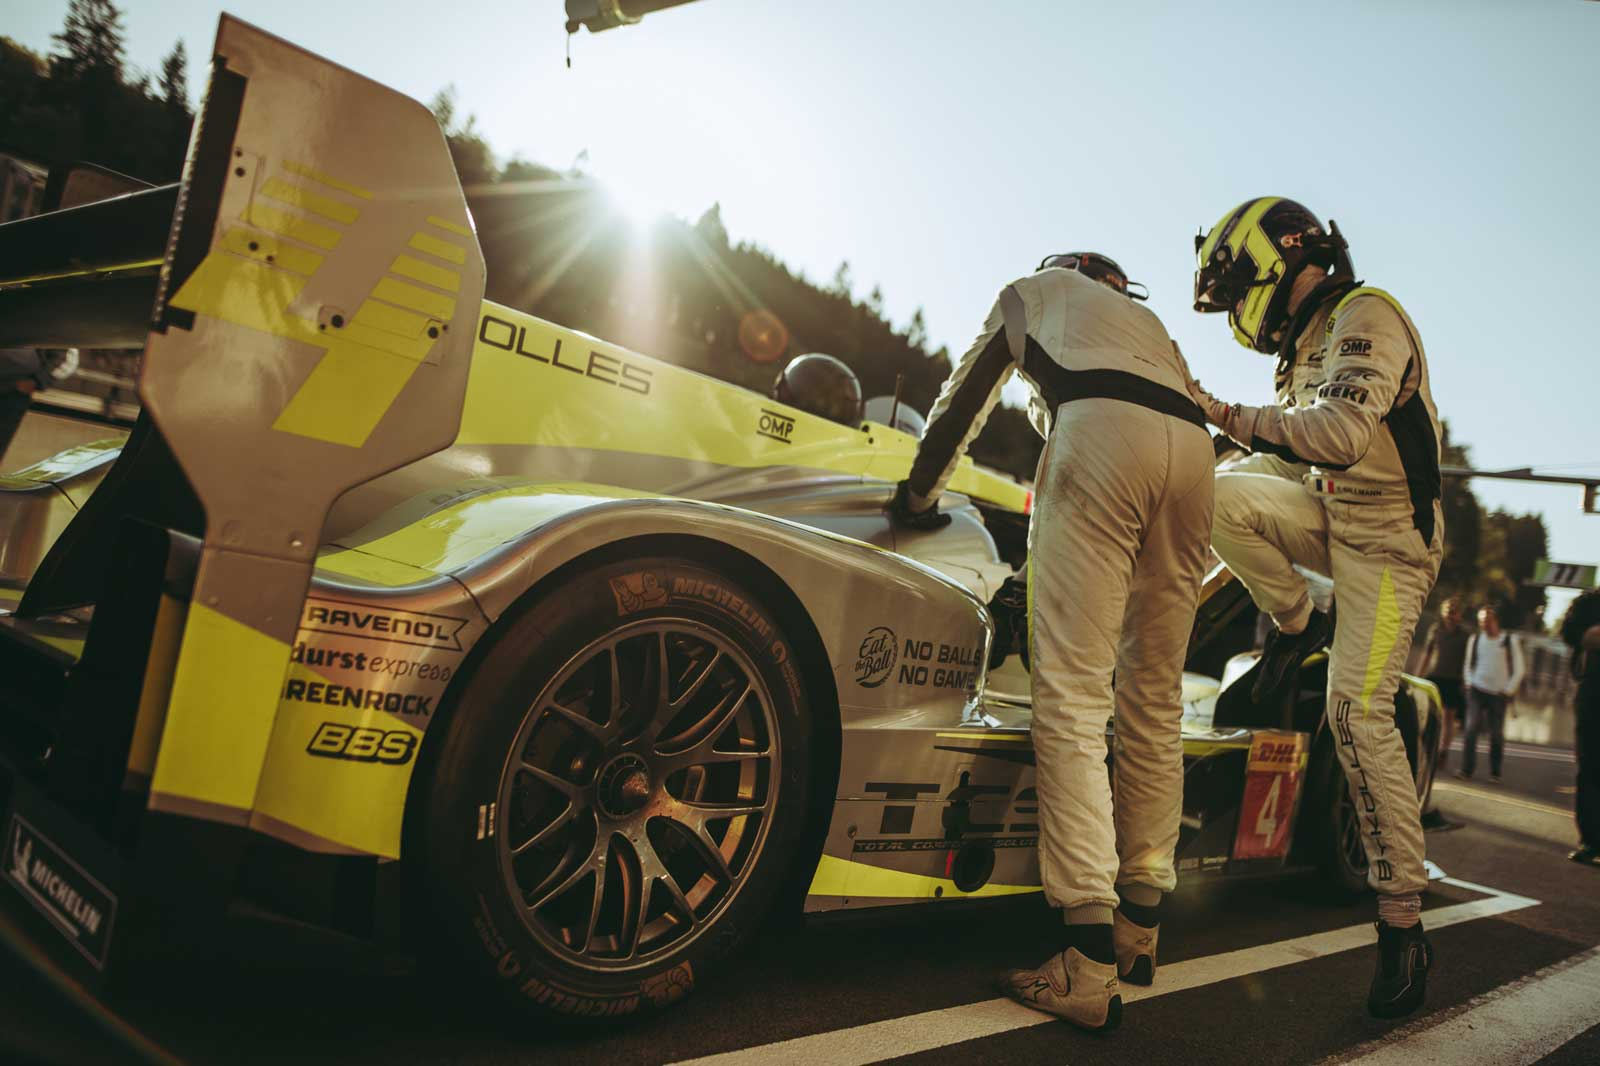 ByKOLLES Racing, Spa-Francorchamps post race media info